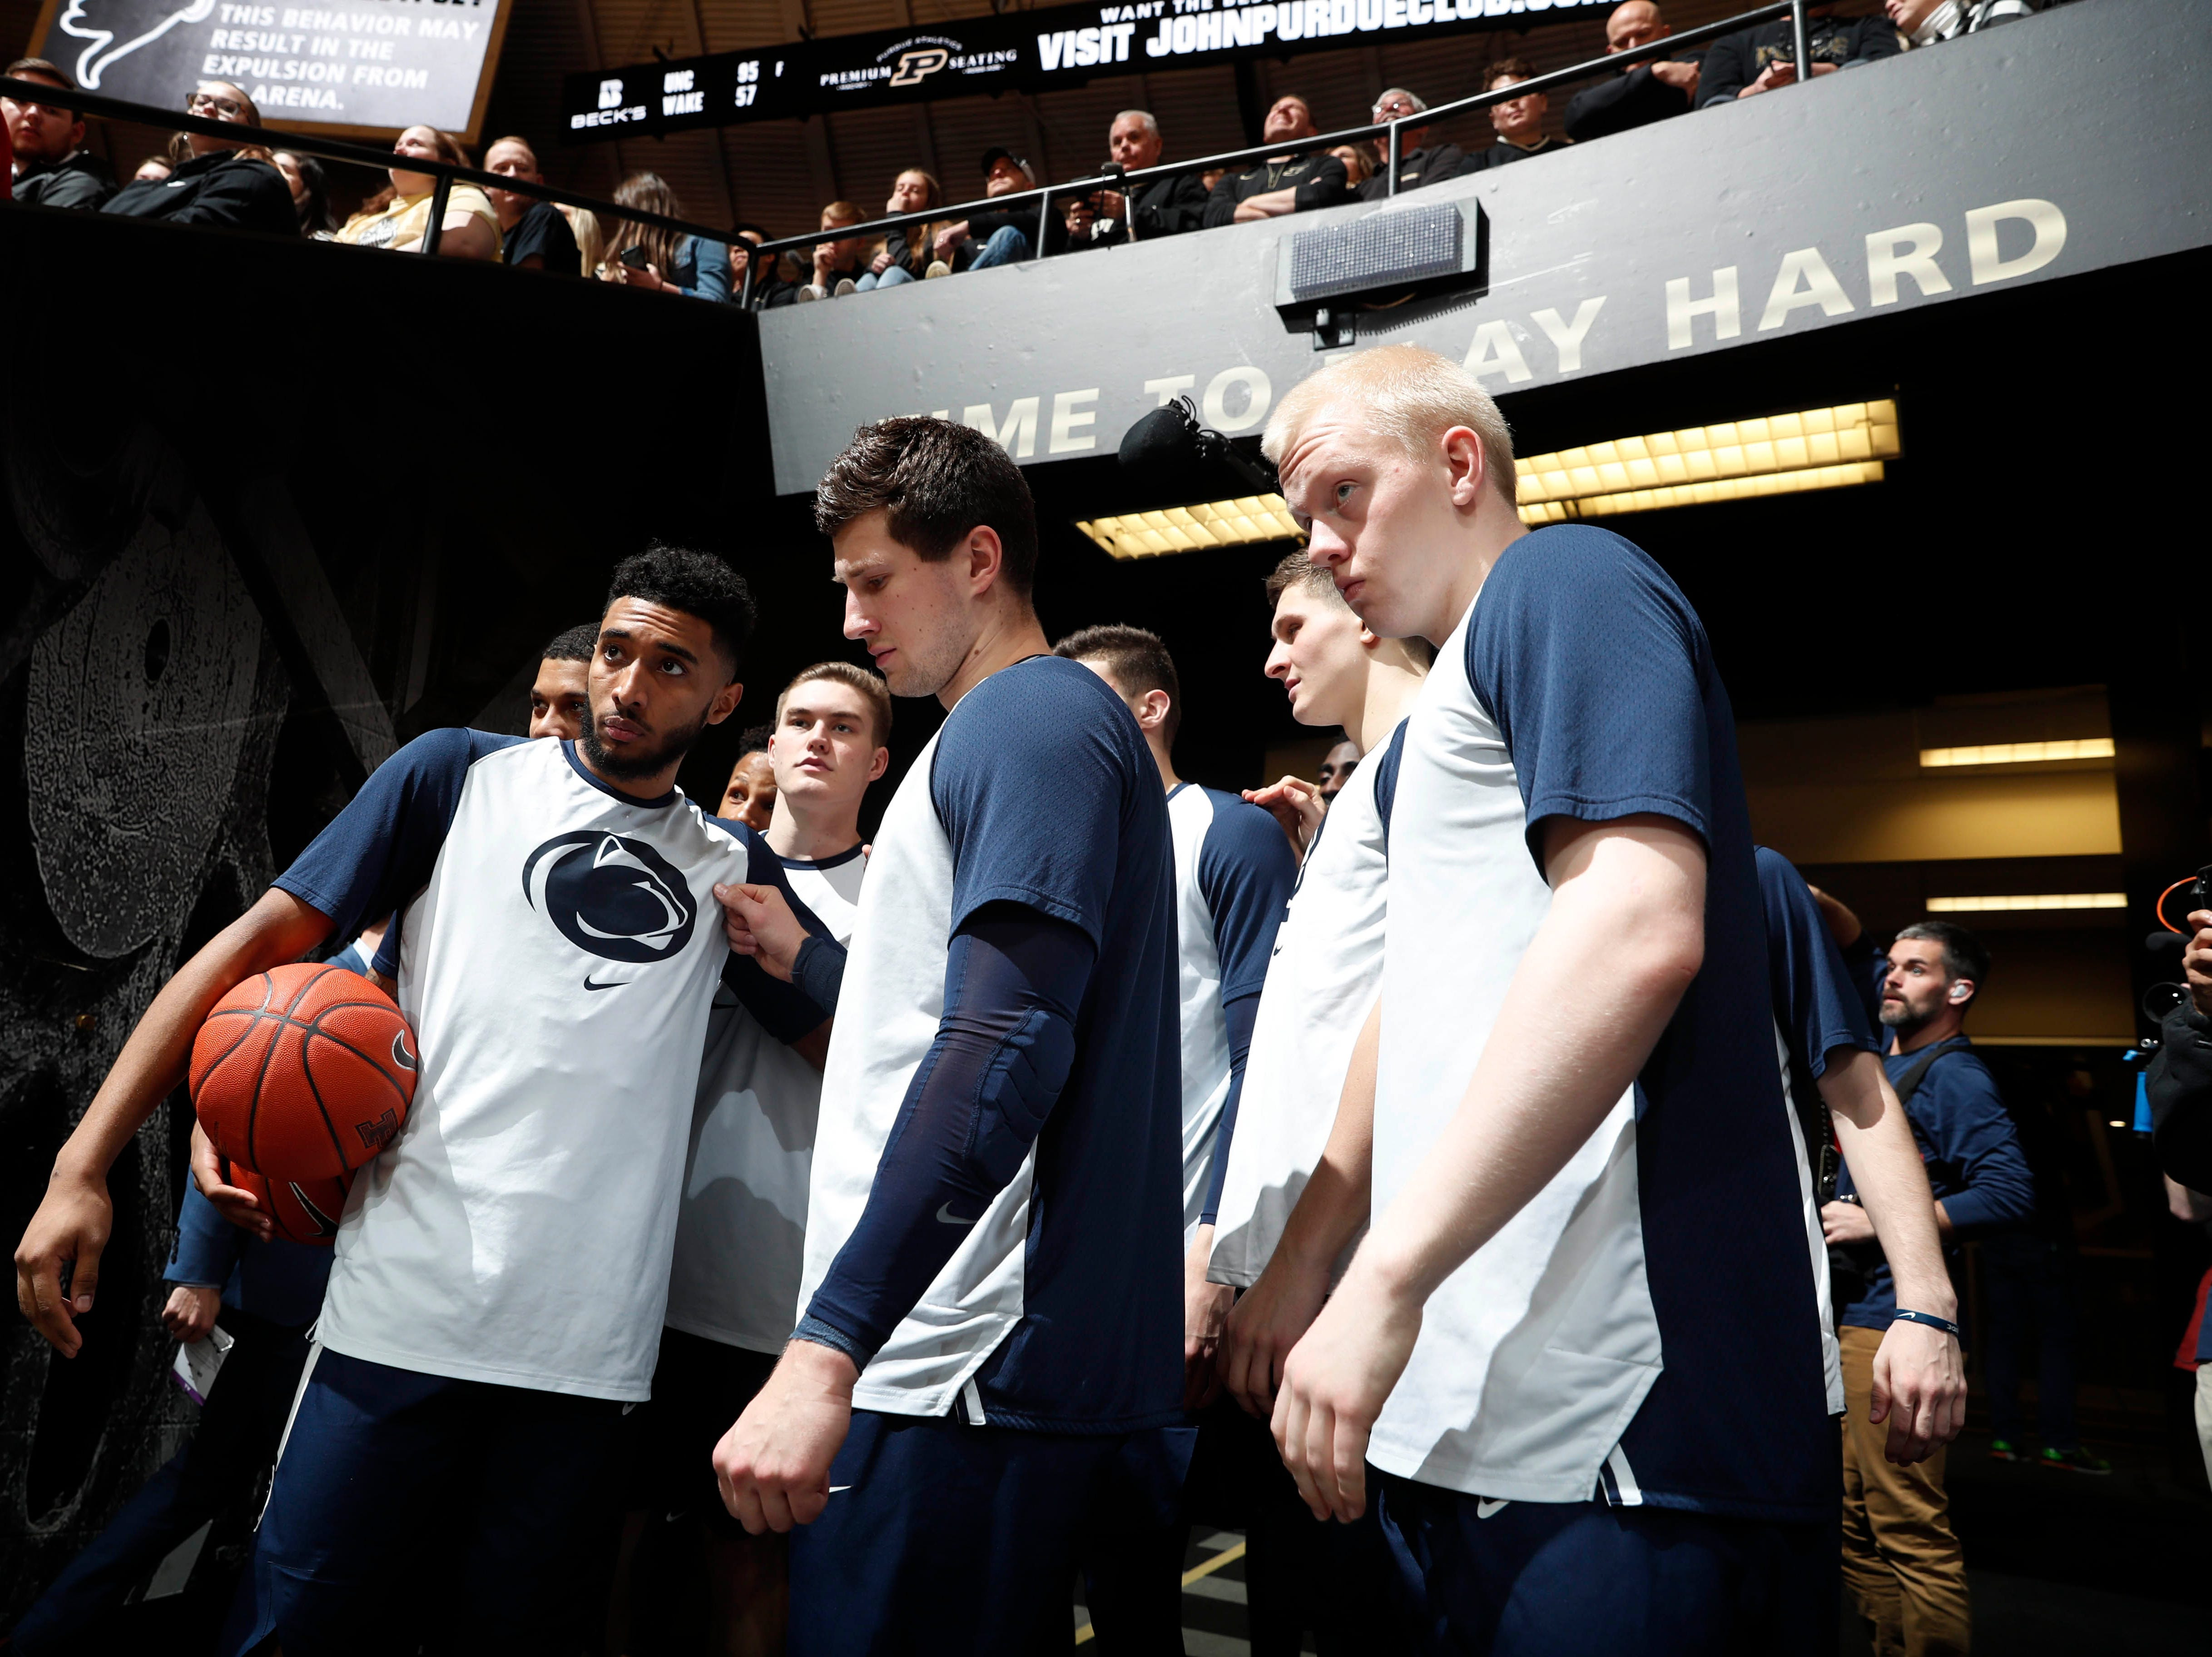 Feb 16, 2019; West Lafayette, IN, USA; Penn State Nittany Lions huddle up in the tunnel before the game against the Purdue Boilermakers at Mackey Arena. Mandatory Credit: Brian Spurlock-USA TODAY Sports